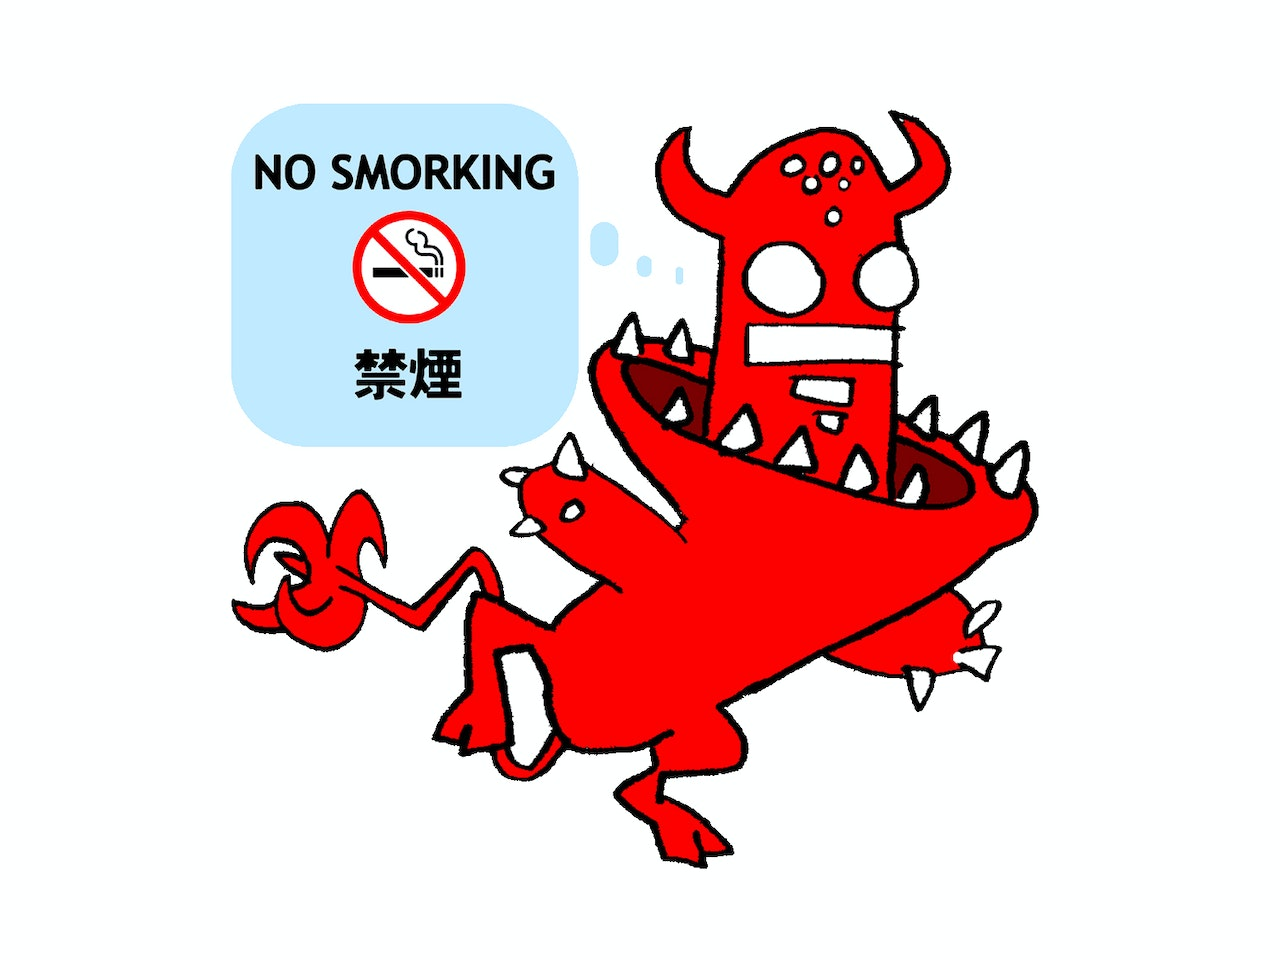 demon no smoking fun friendly cartoon tattoo  logo icon emoji linework simple basic emoticon mascot avatar sprite animation anthropomorphic character urban vinyl toy street art  pictoplasma graffiti graff